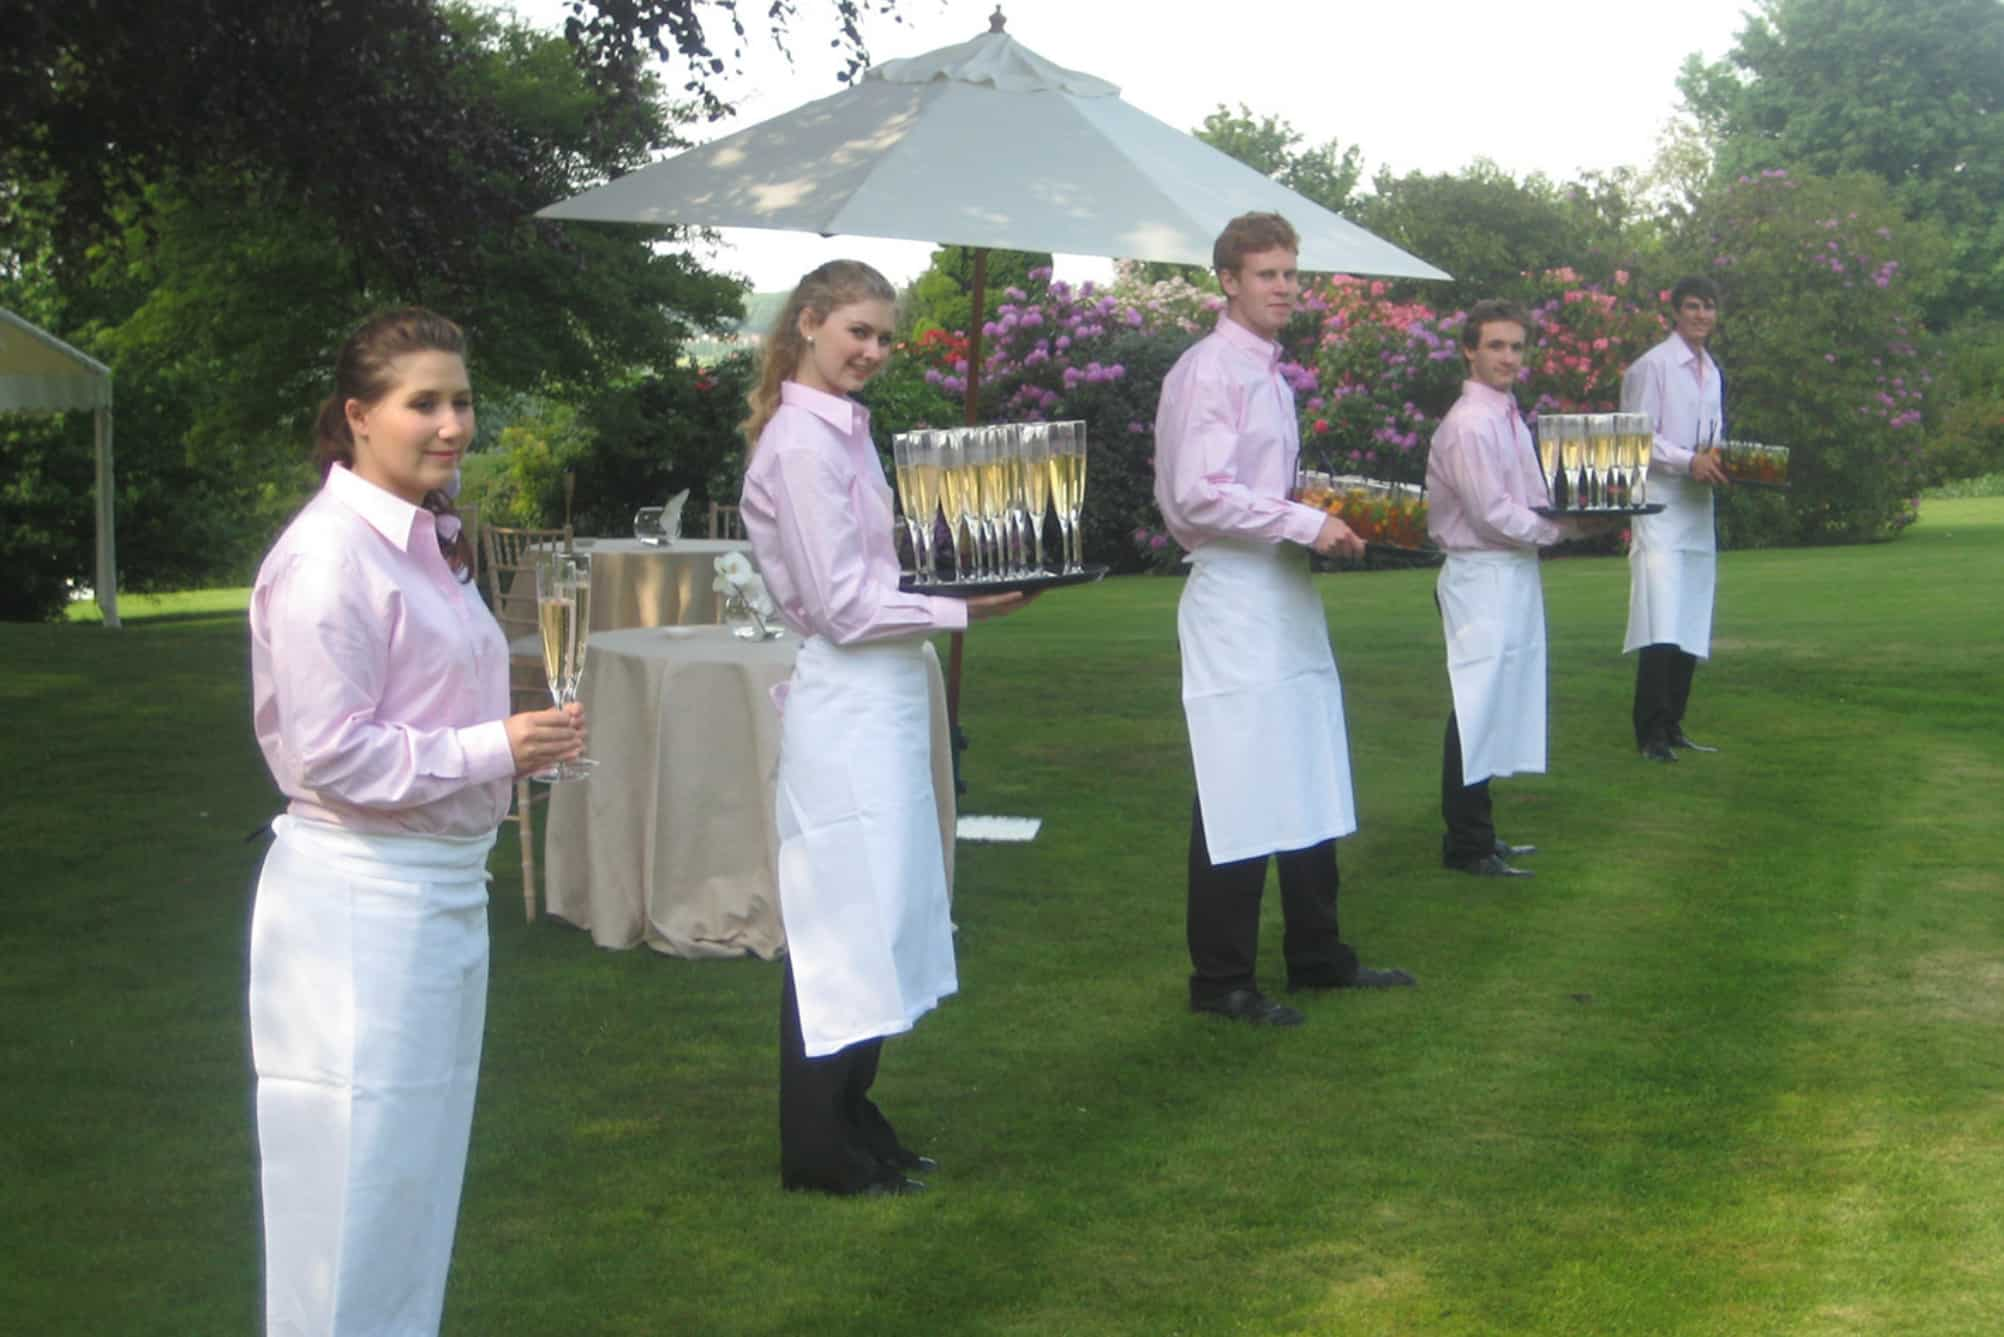 Waiting staff outdoor event